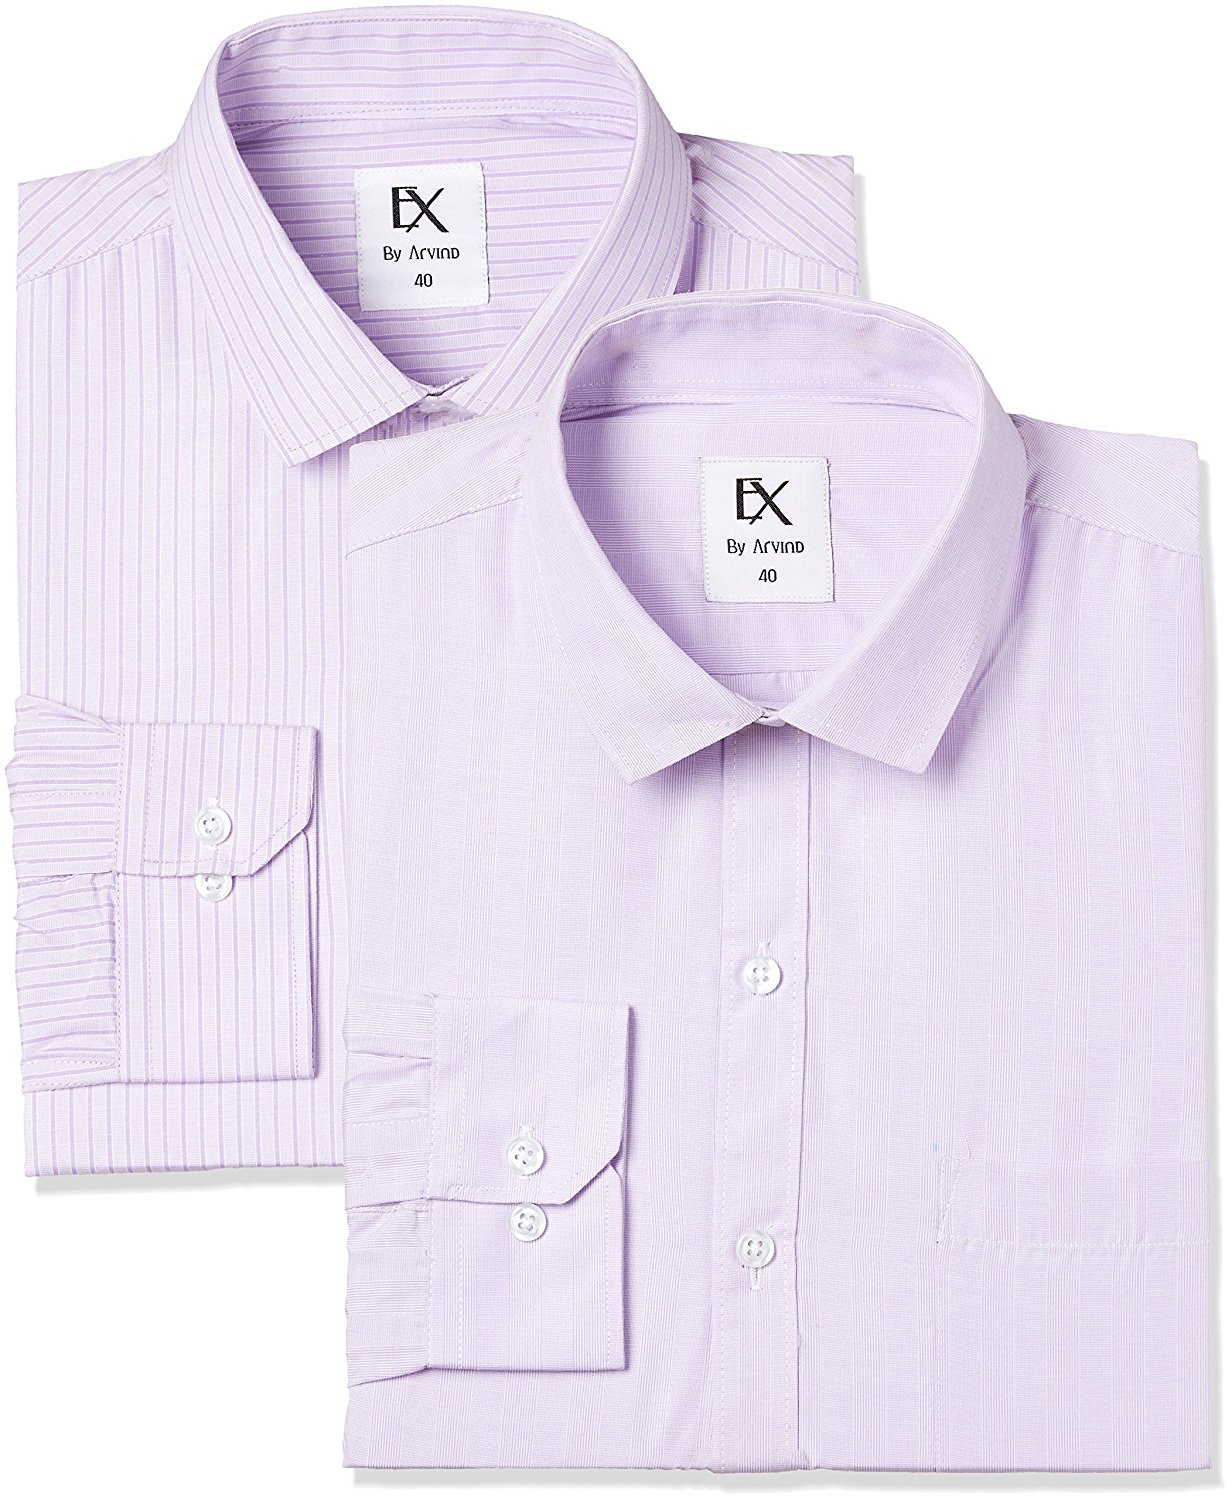 Amazon - Buy Ex by Excalibur Men's Formal Shirt (Pack of 2) in just Rs.348